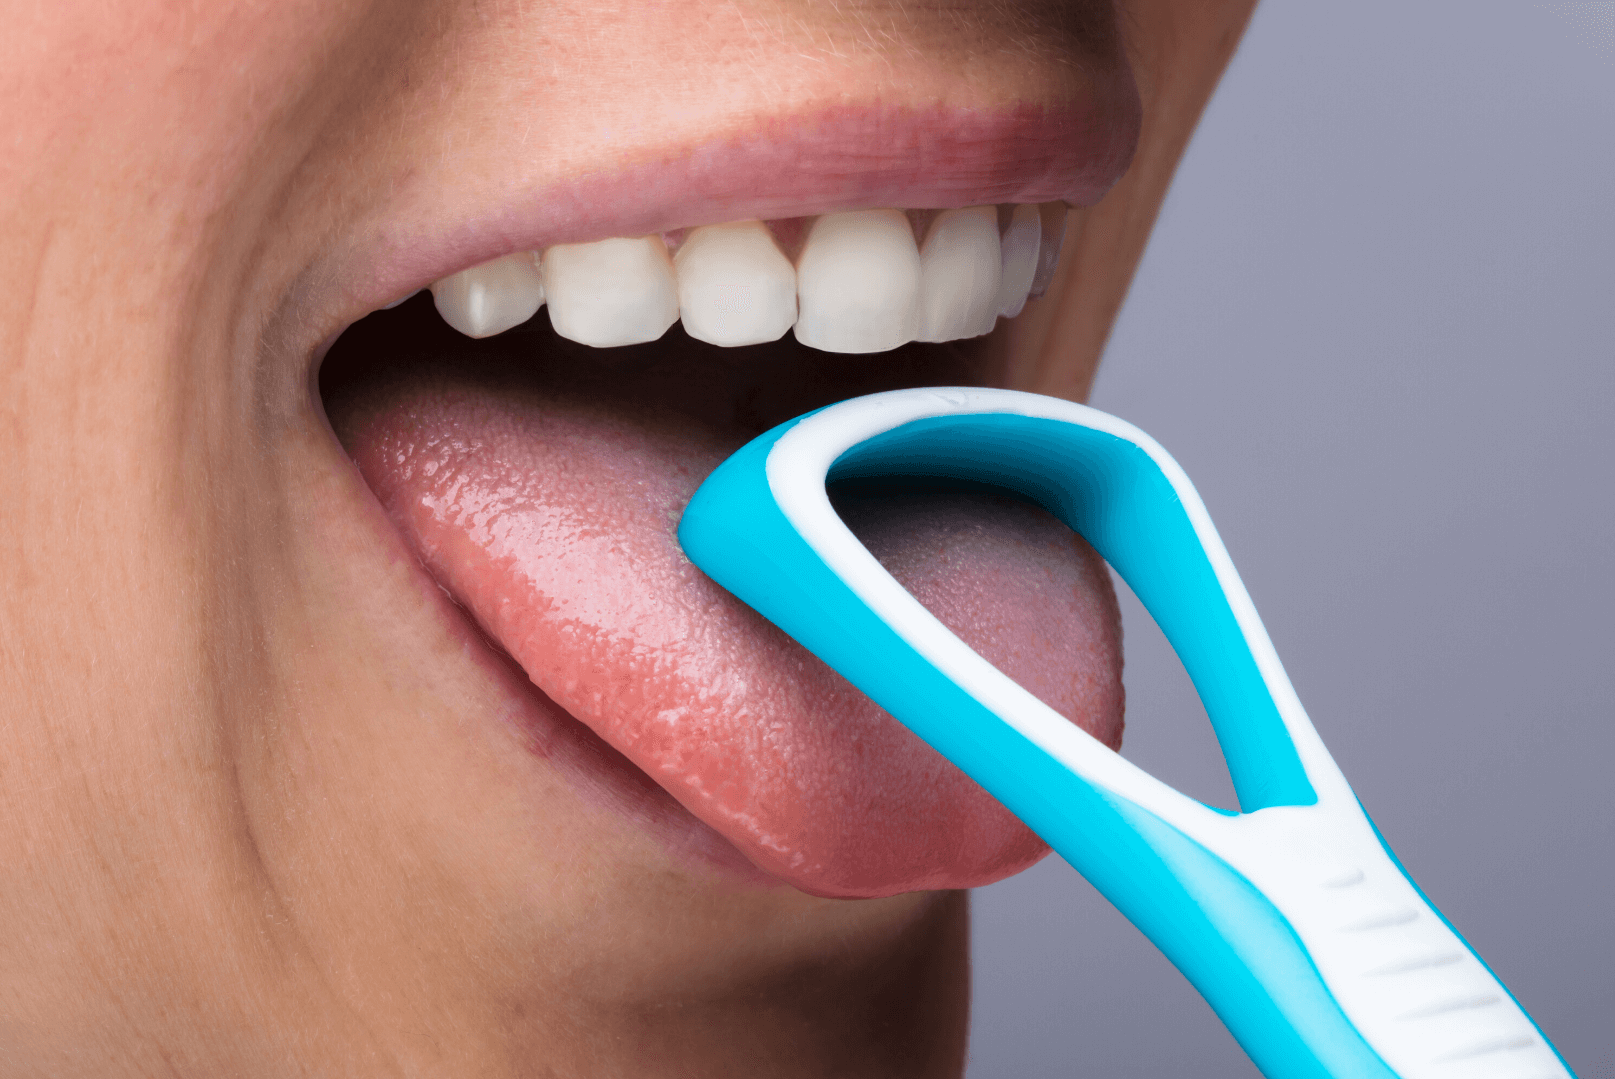 close up on person's mouth tongue out plastic tongue scraper